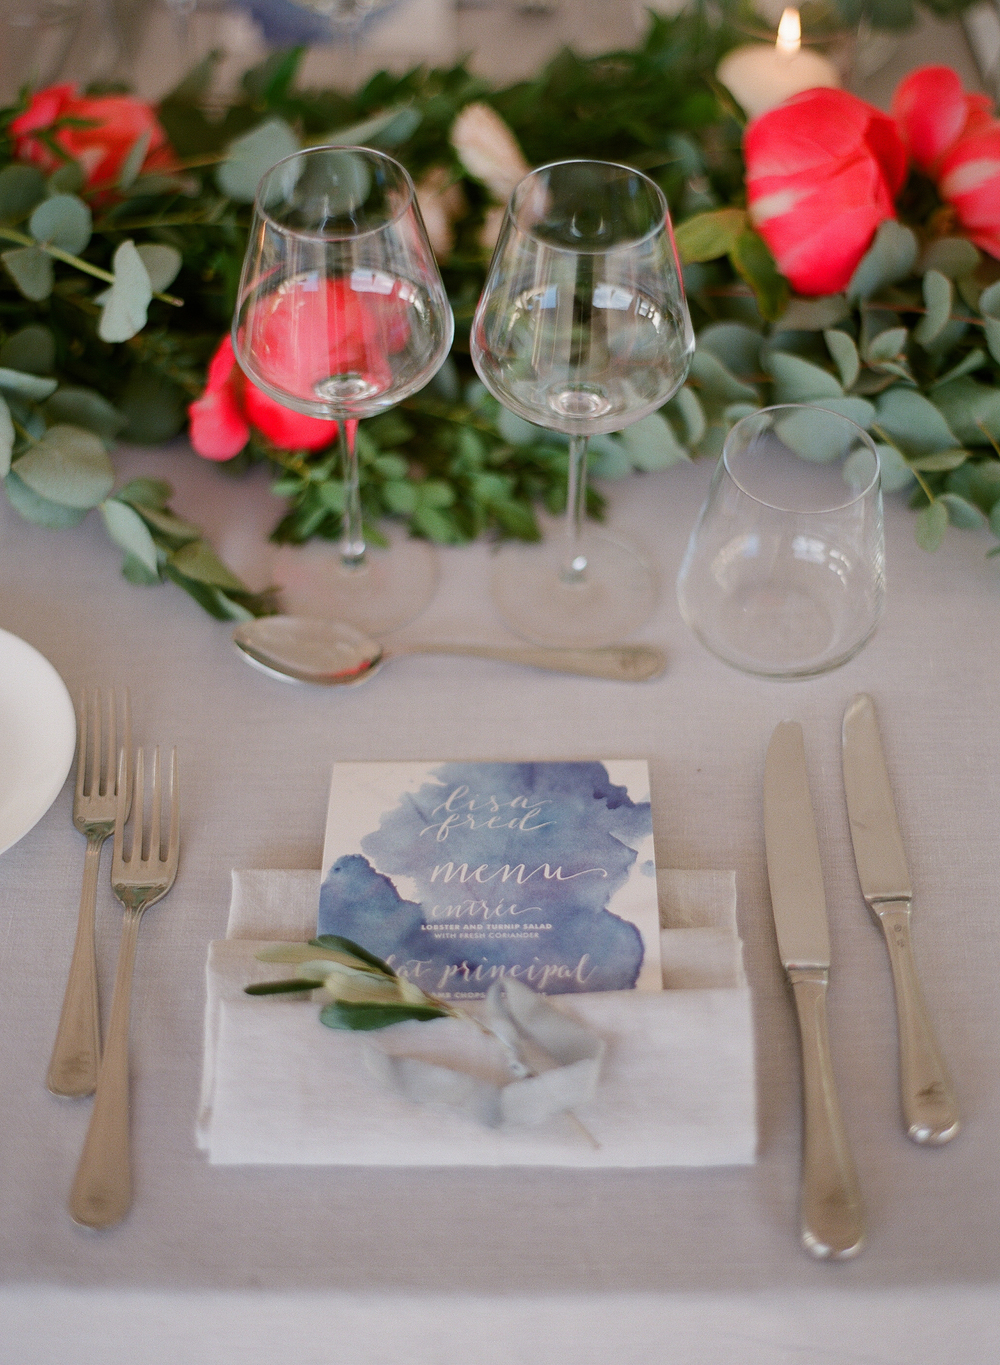 7. Place Setting with Personalized Watercolor Menu and Olive Sprig Tied with Hand-Dyed Silk Ribbon.jpg